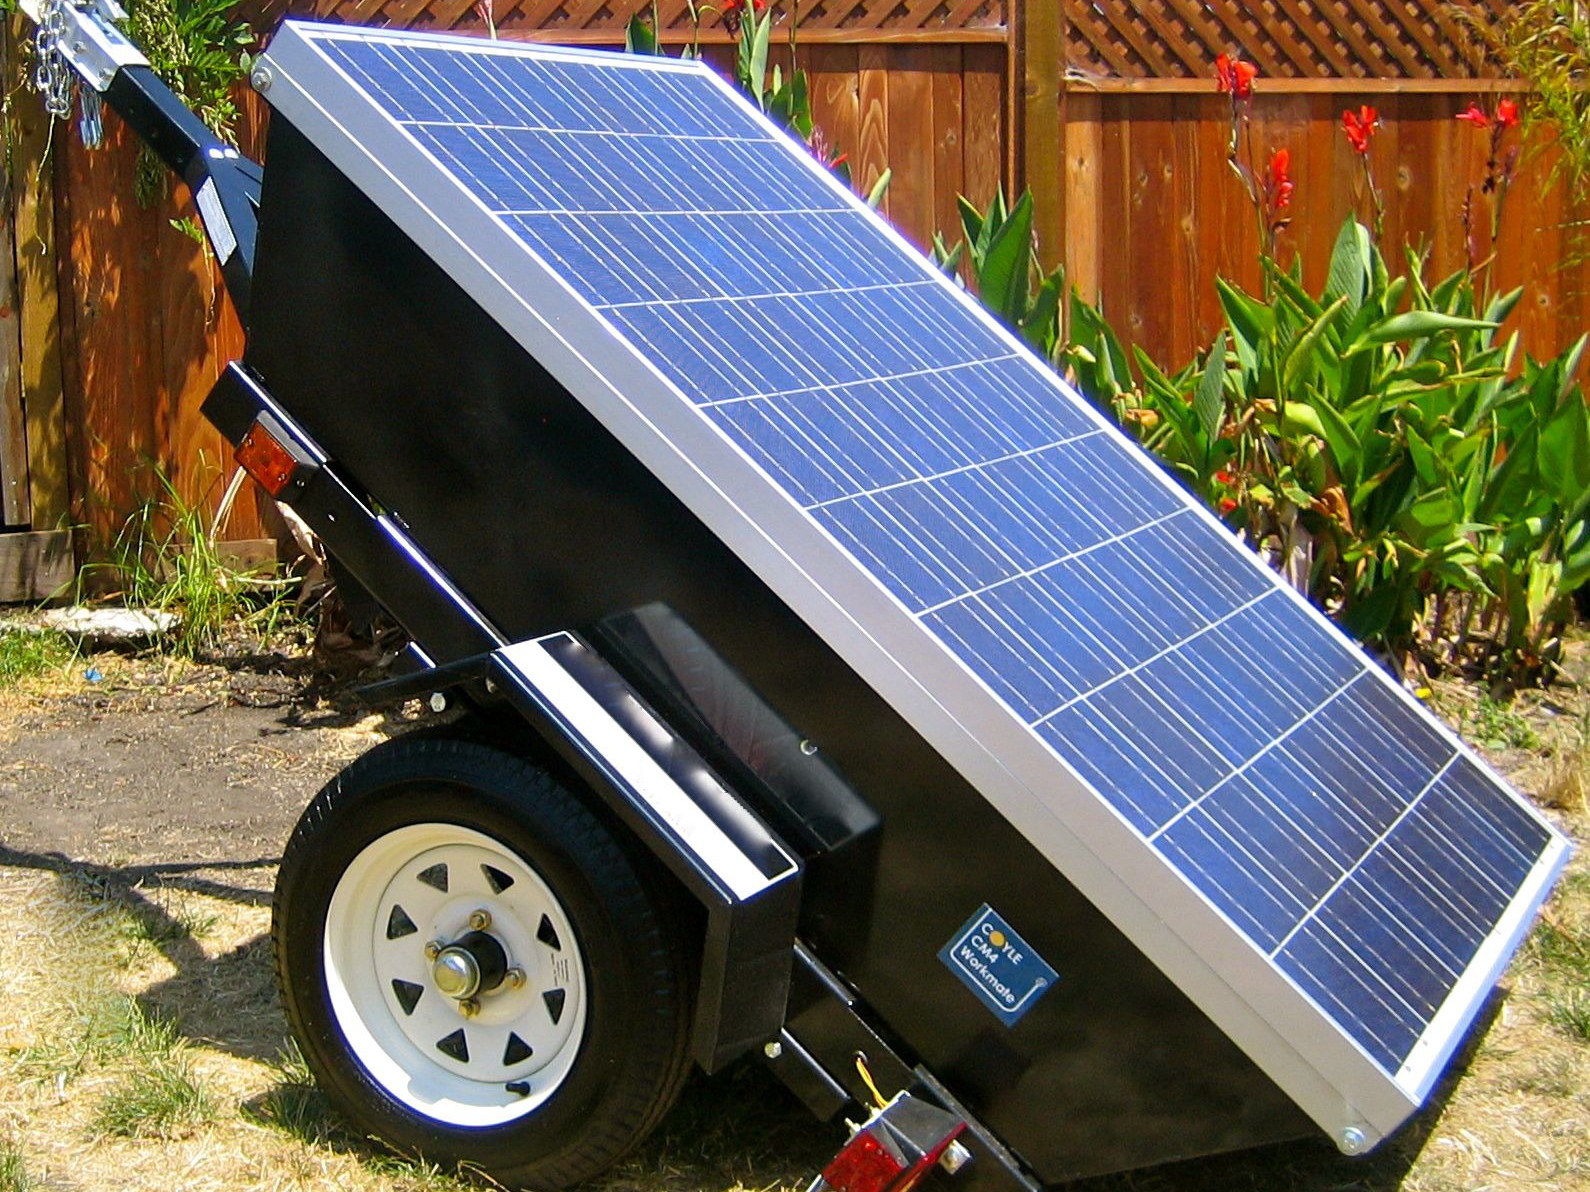 Photovoltaic System Wikipedia Solar Cells Produce Dc Electricity From Light Sunlight Contains Profile Picture Of A Mobile Powered Generator